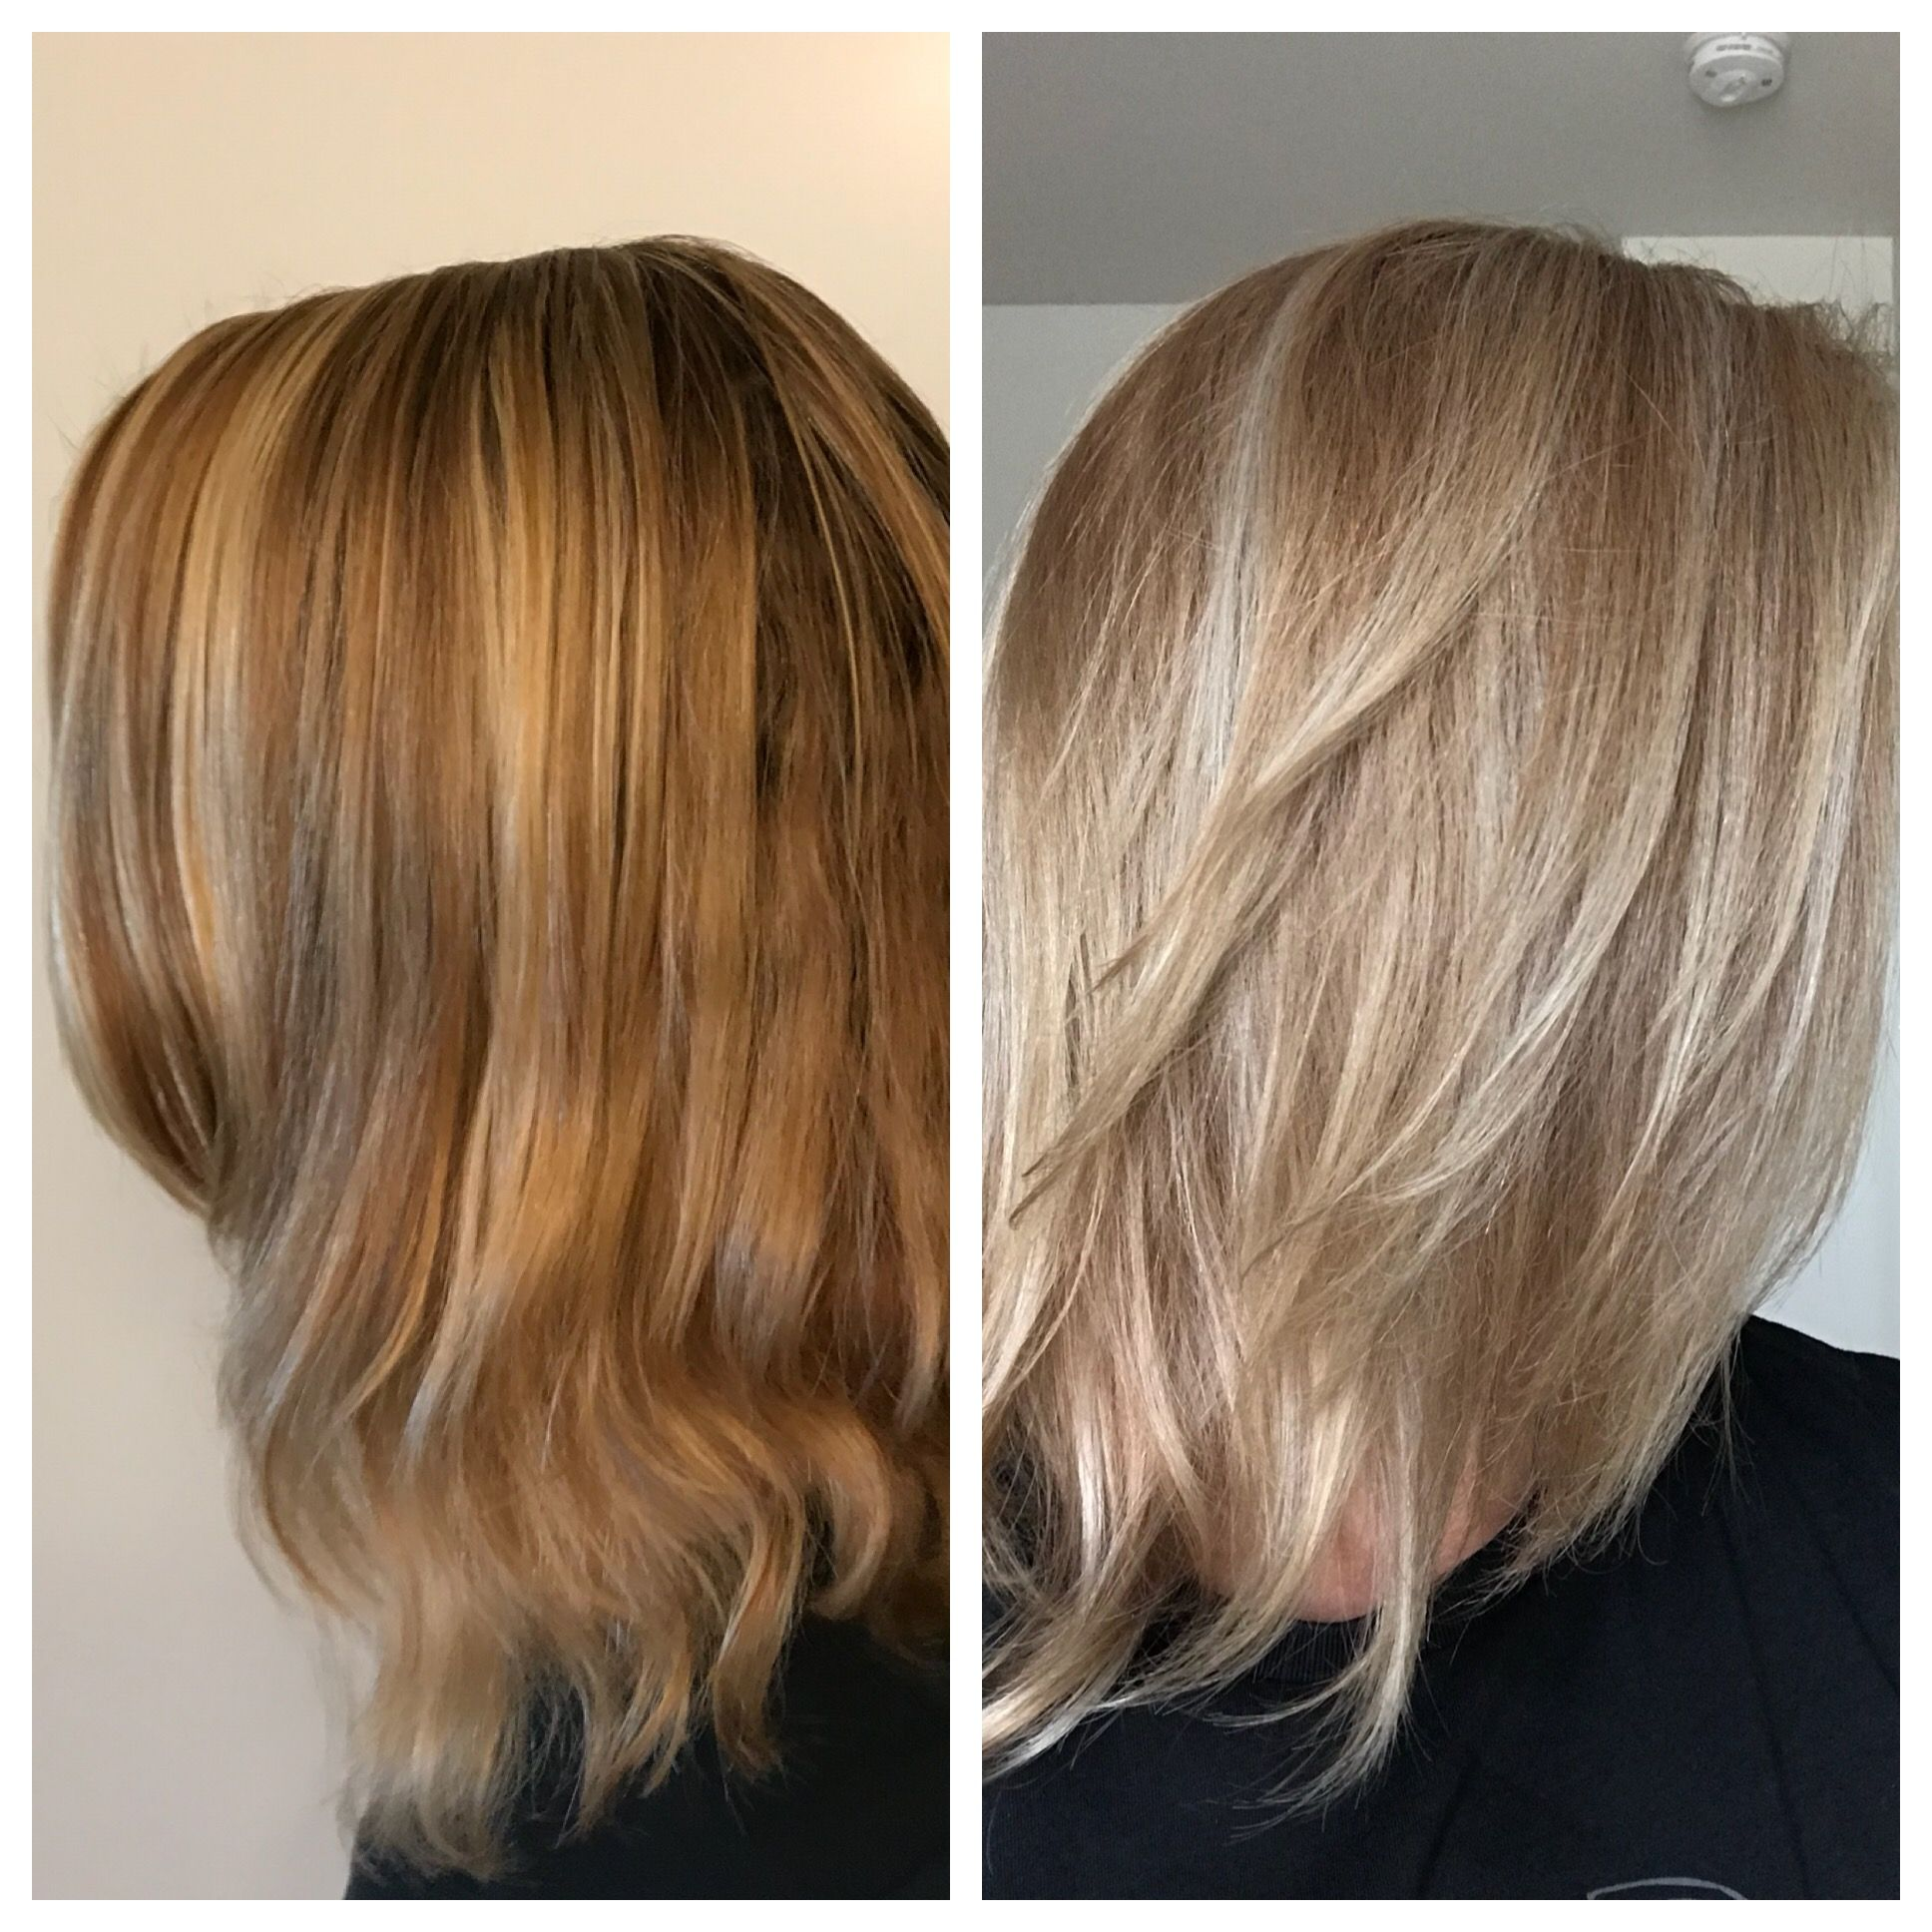 Wella Color Charm T18 Toner With 20 Developer Before And After